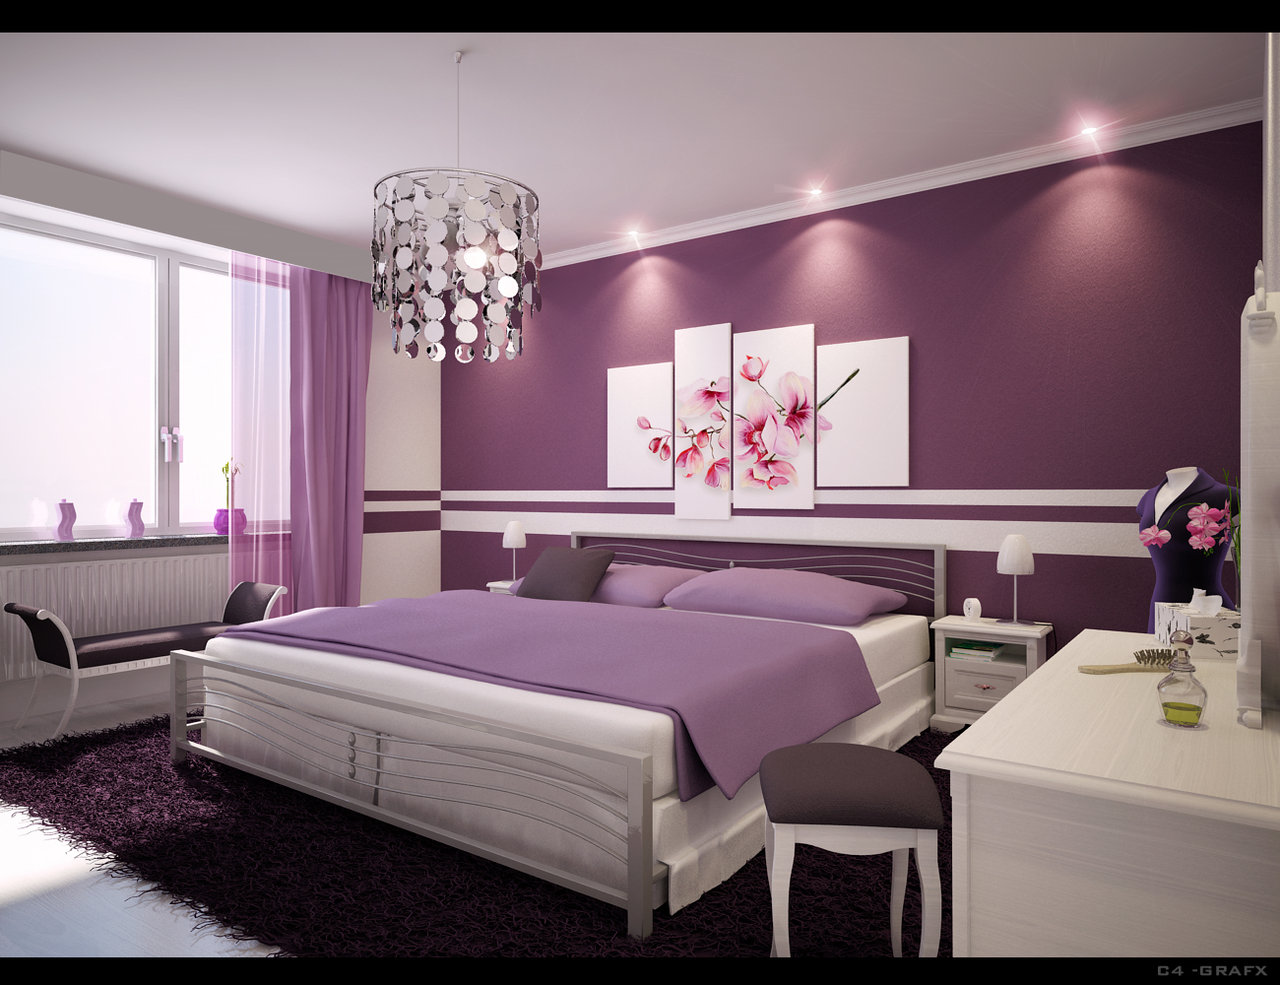 Home interior designs simple ideas for purple room design for New bedroom designs photos